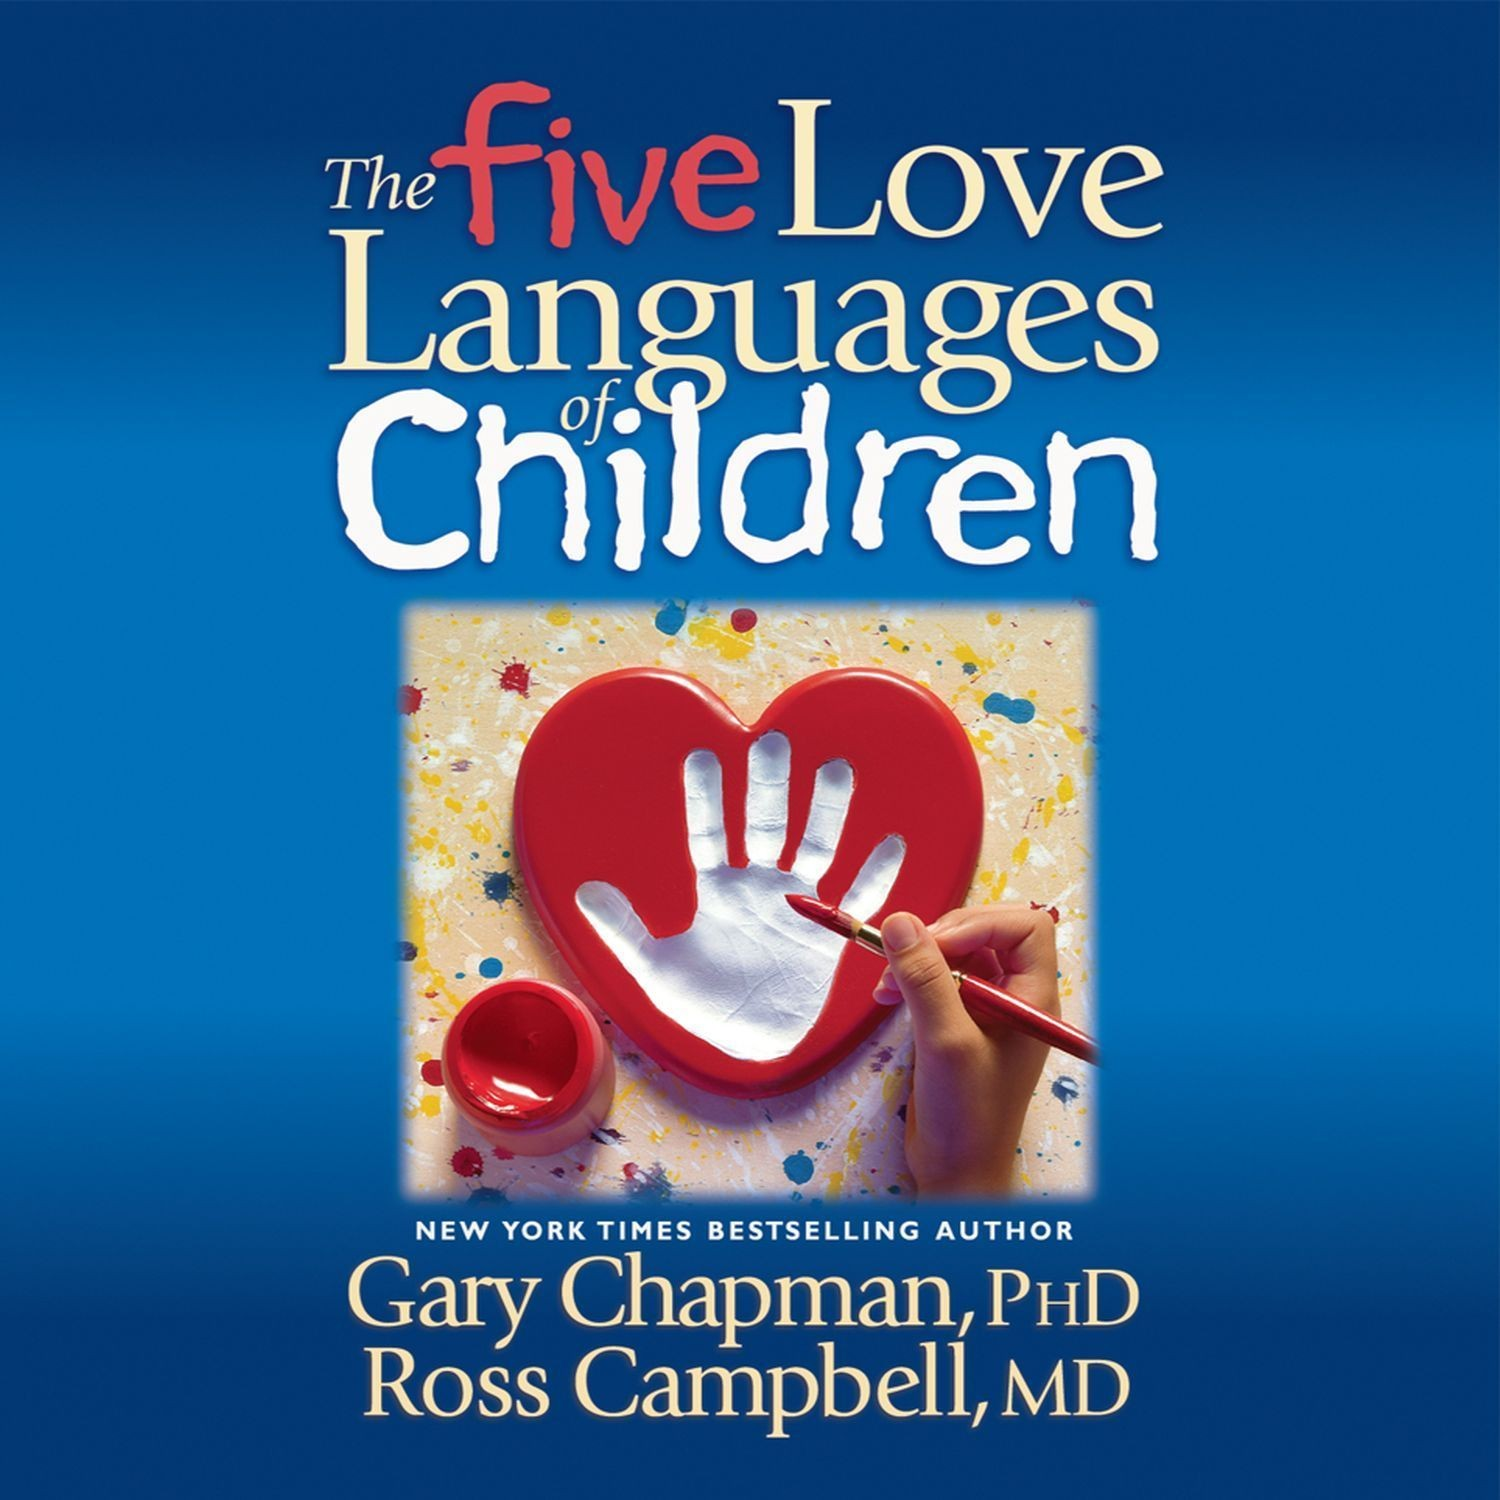 Gary chapman the five love languages quiz